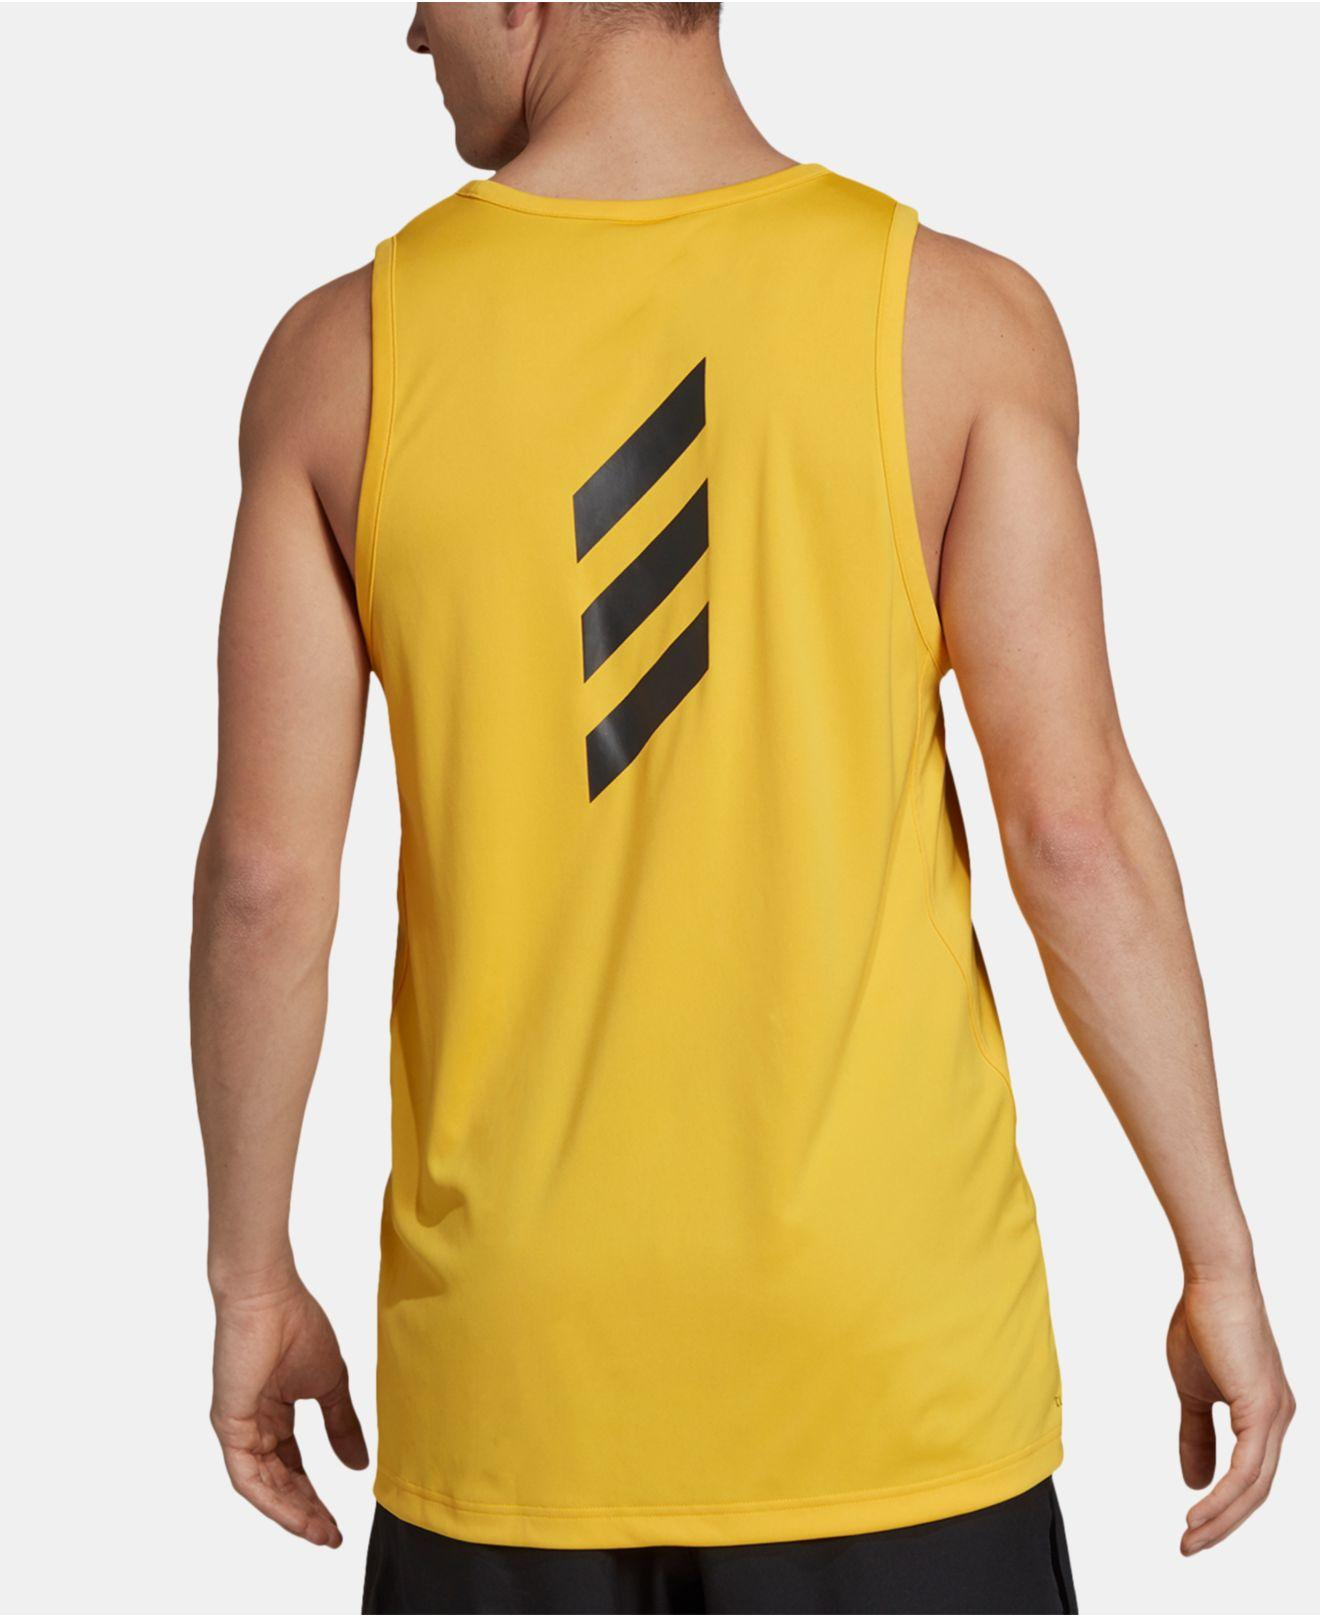 In Adidas For Yellow Top Lyst Men Climalite® Tank UqMSGzVp